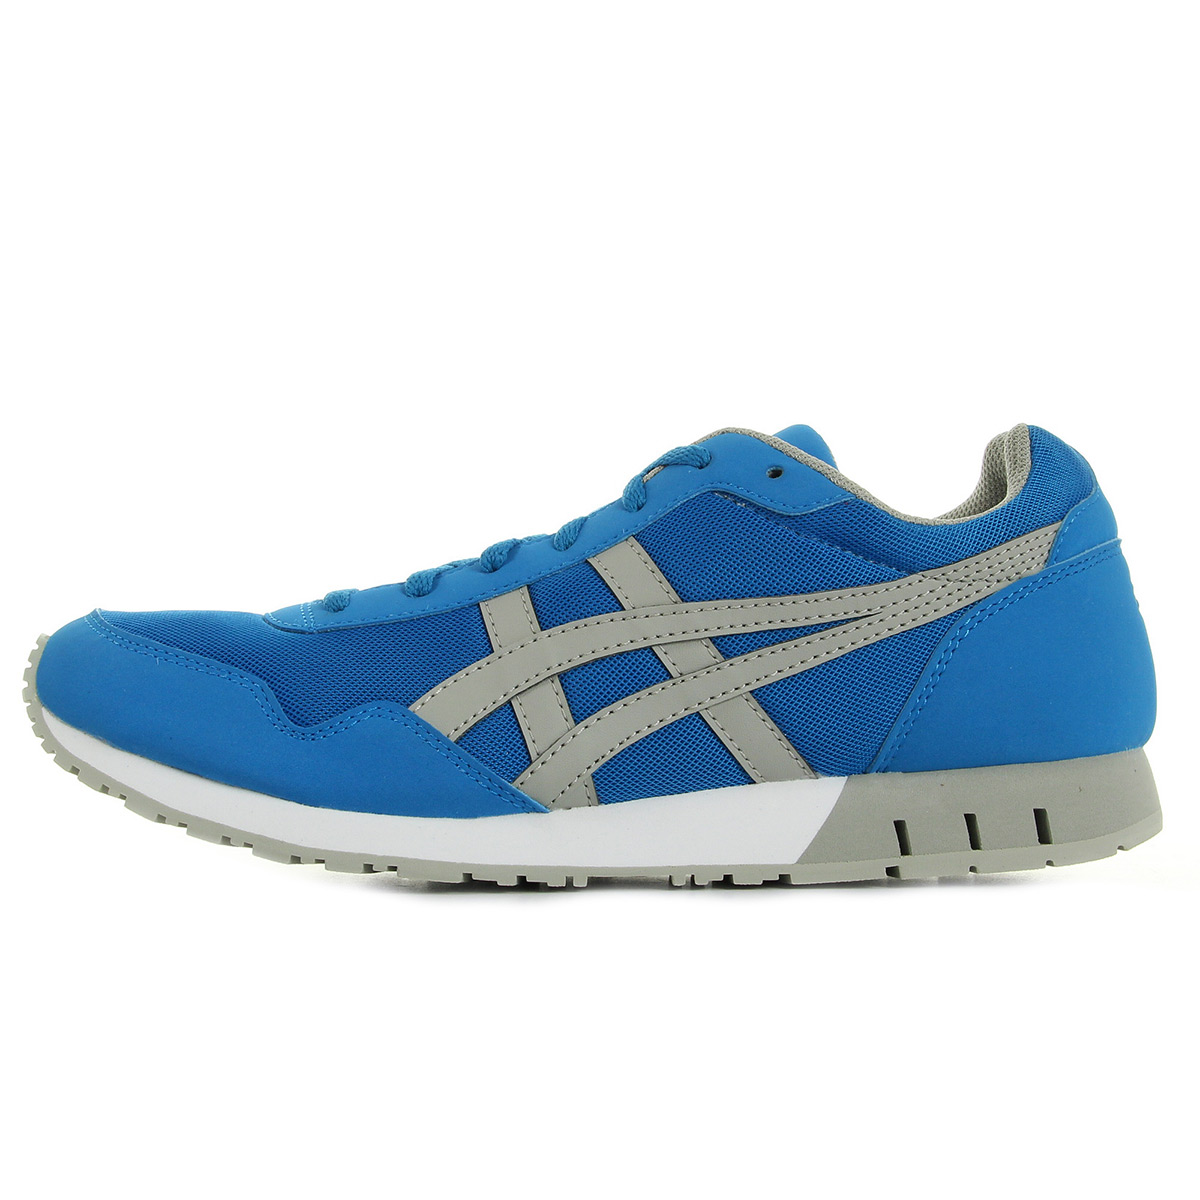 chaussures baskets asics homme curreo taille bleu marine bleue textile lacets ebay. Black Bedroom Furniture Sets. Home Design Ideas